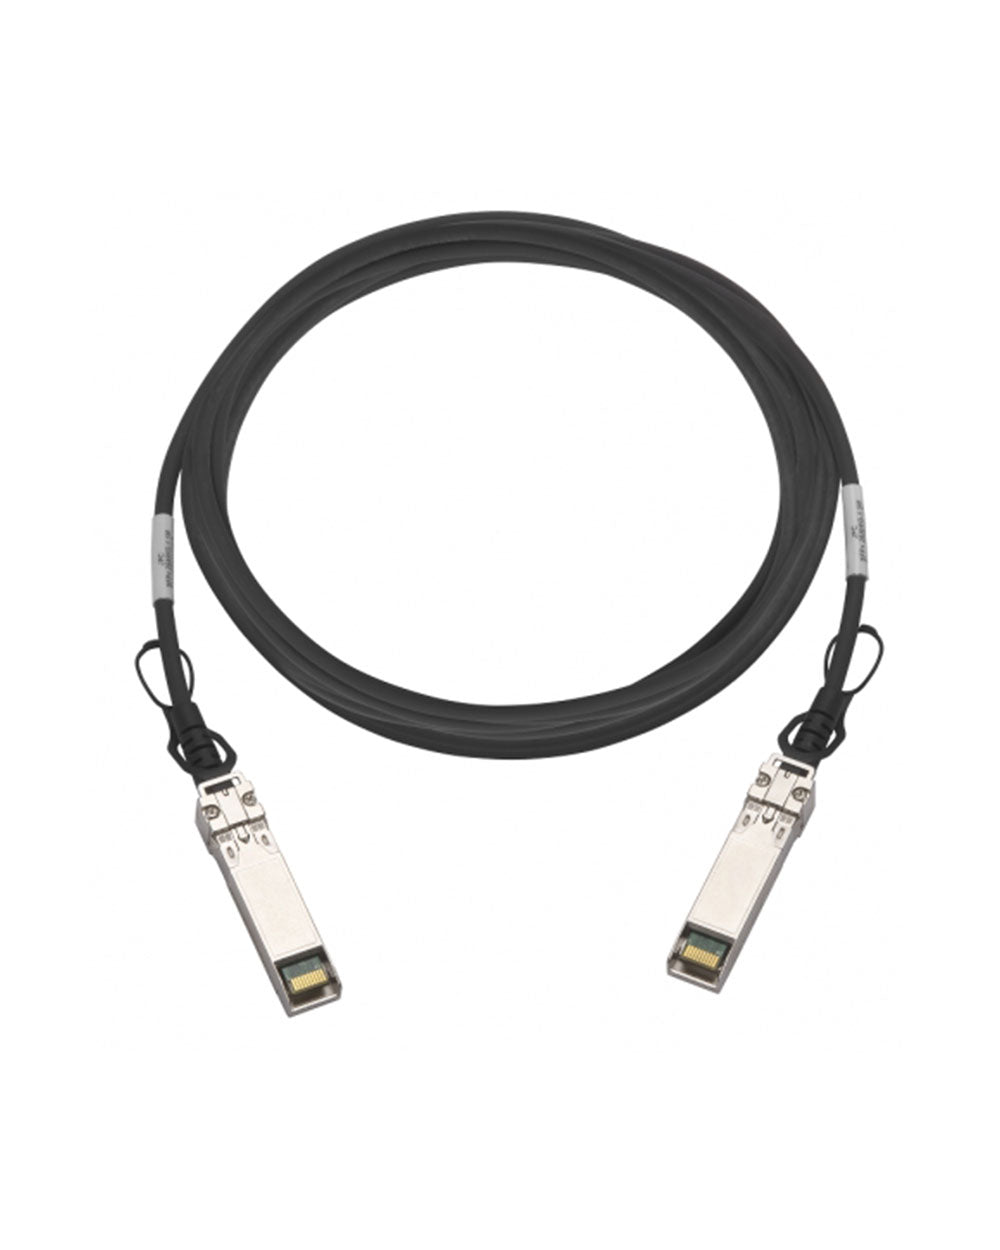 QNAP SFP+ 10GbE twinaxial direct attach cable, 3.0M